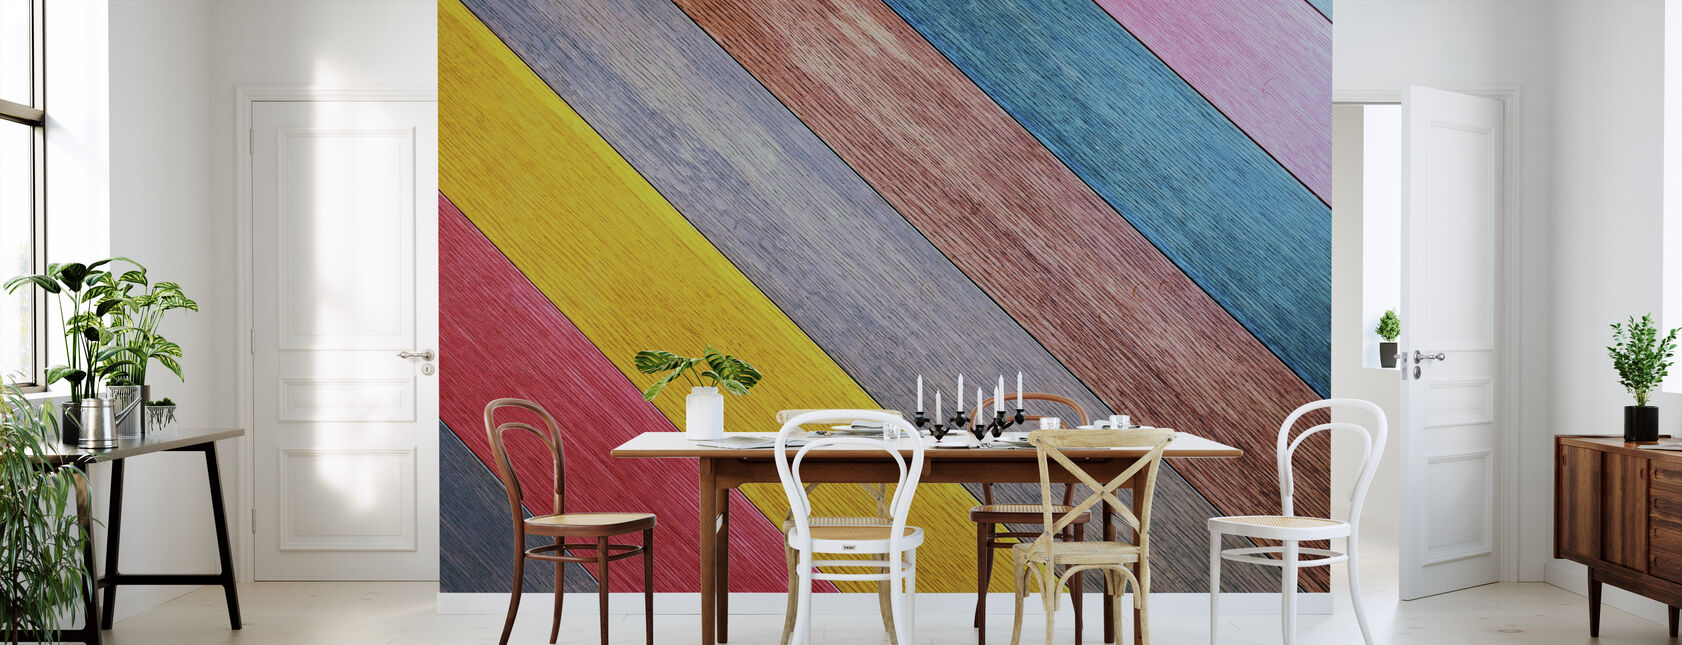 Colorful Wood Table - Wallpaper - Kitchen